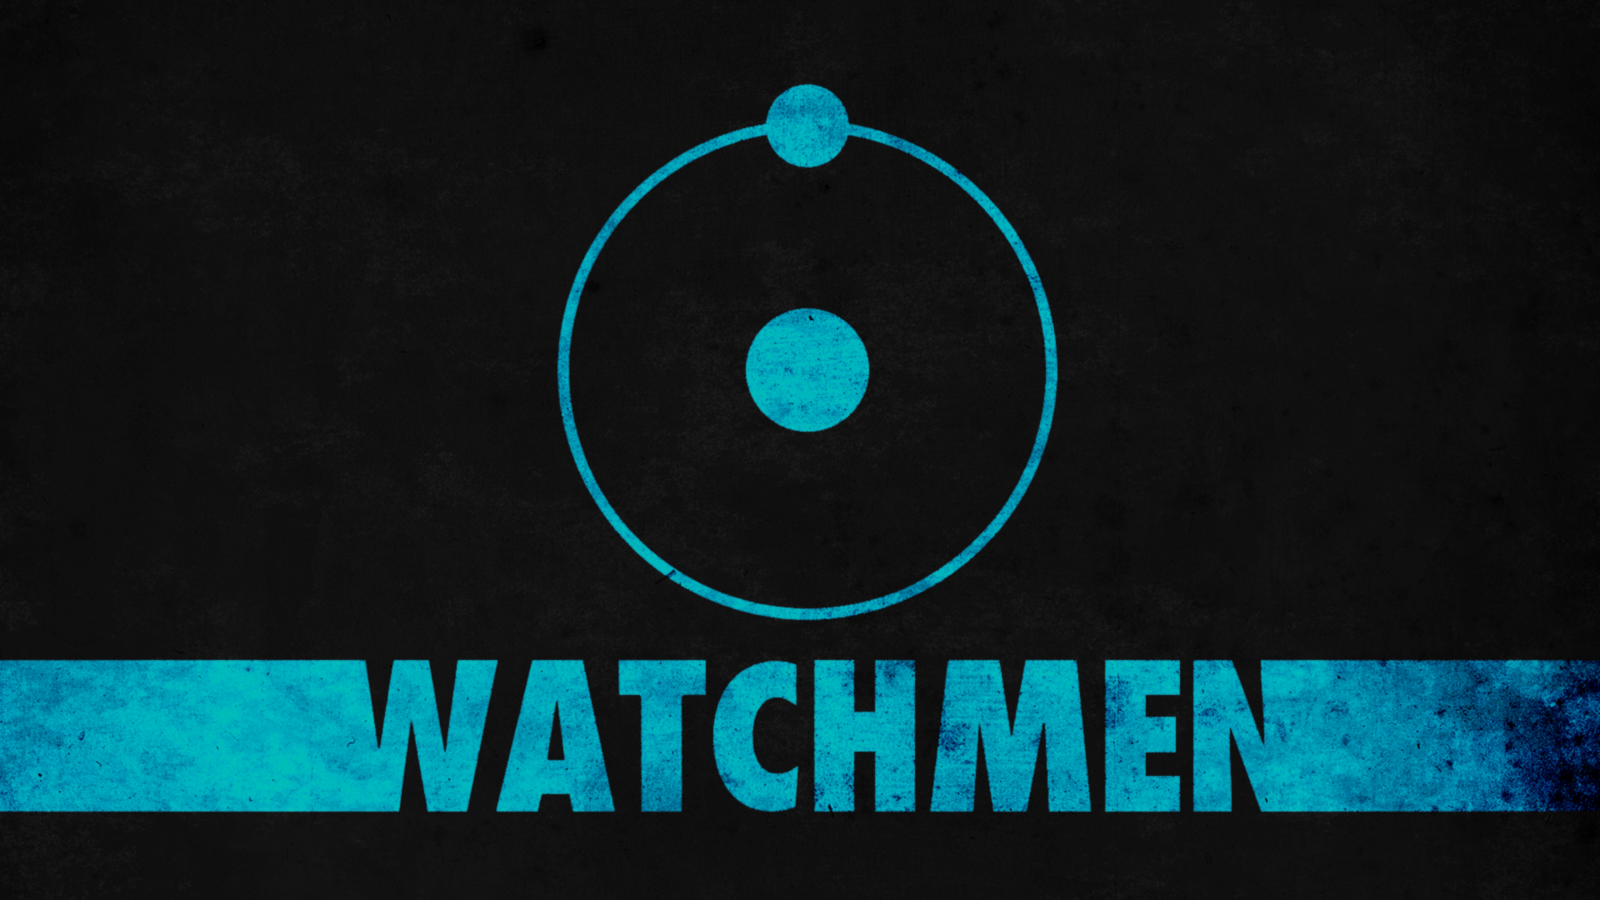 Watchmen Wallpaper for PC | Full HD Pictures